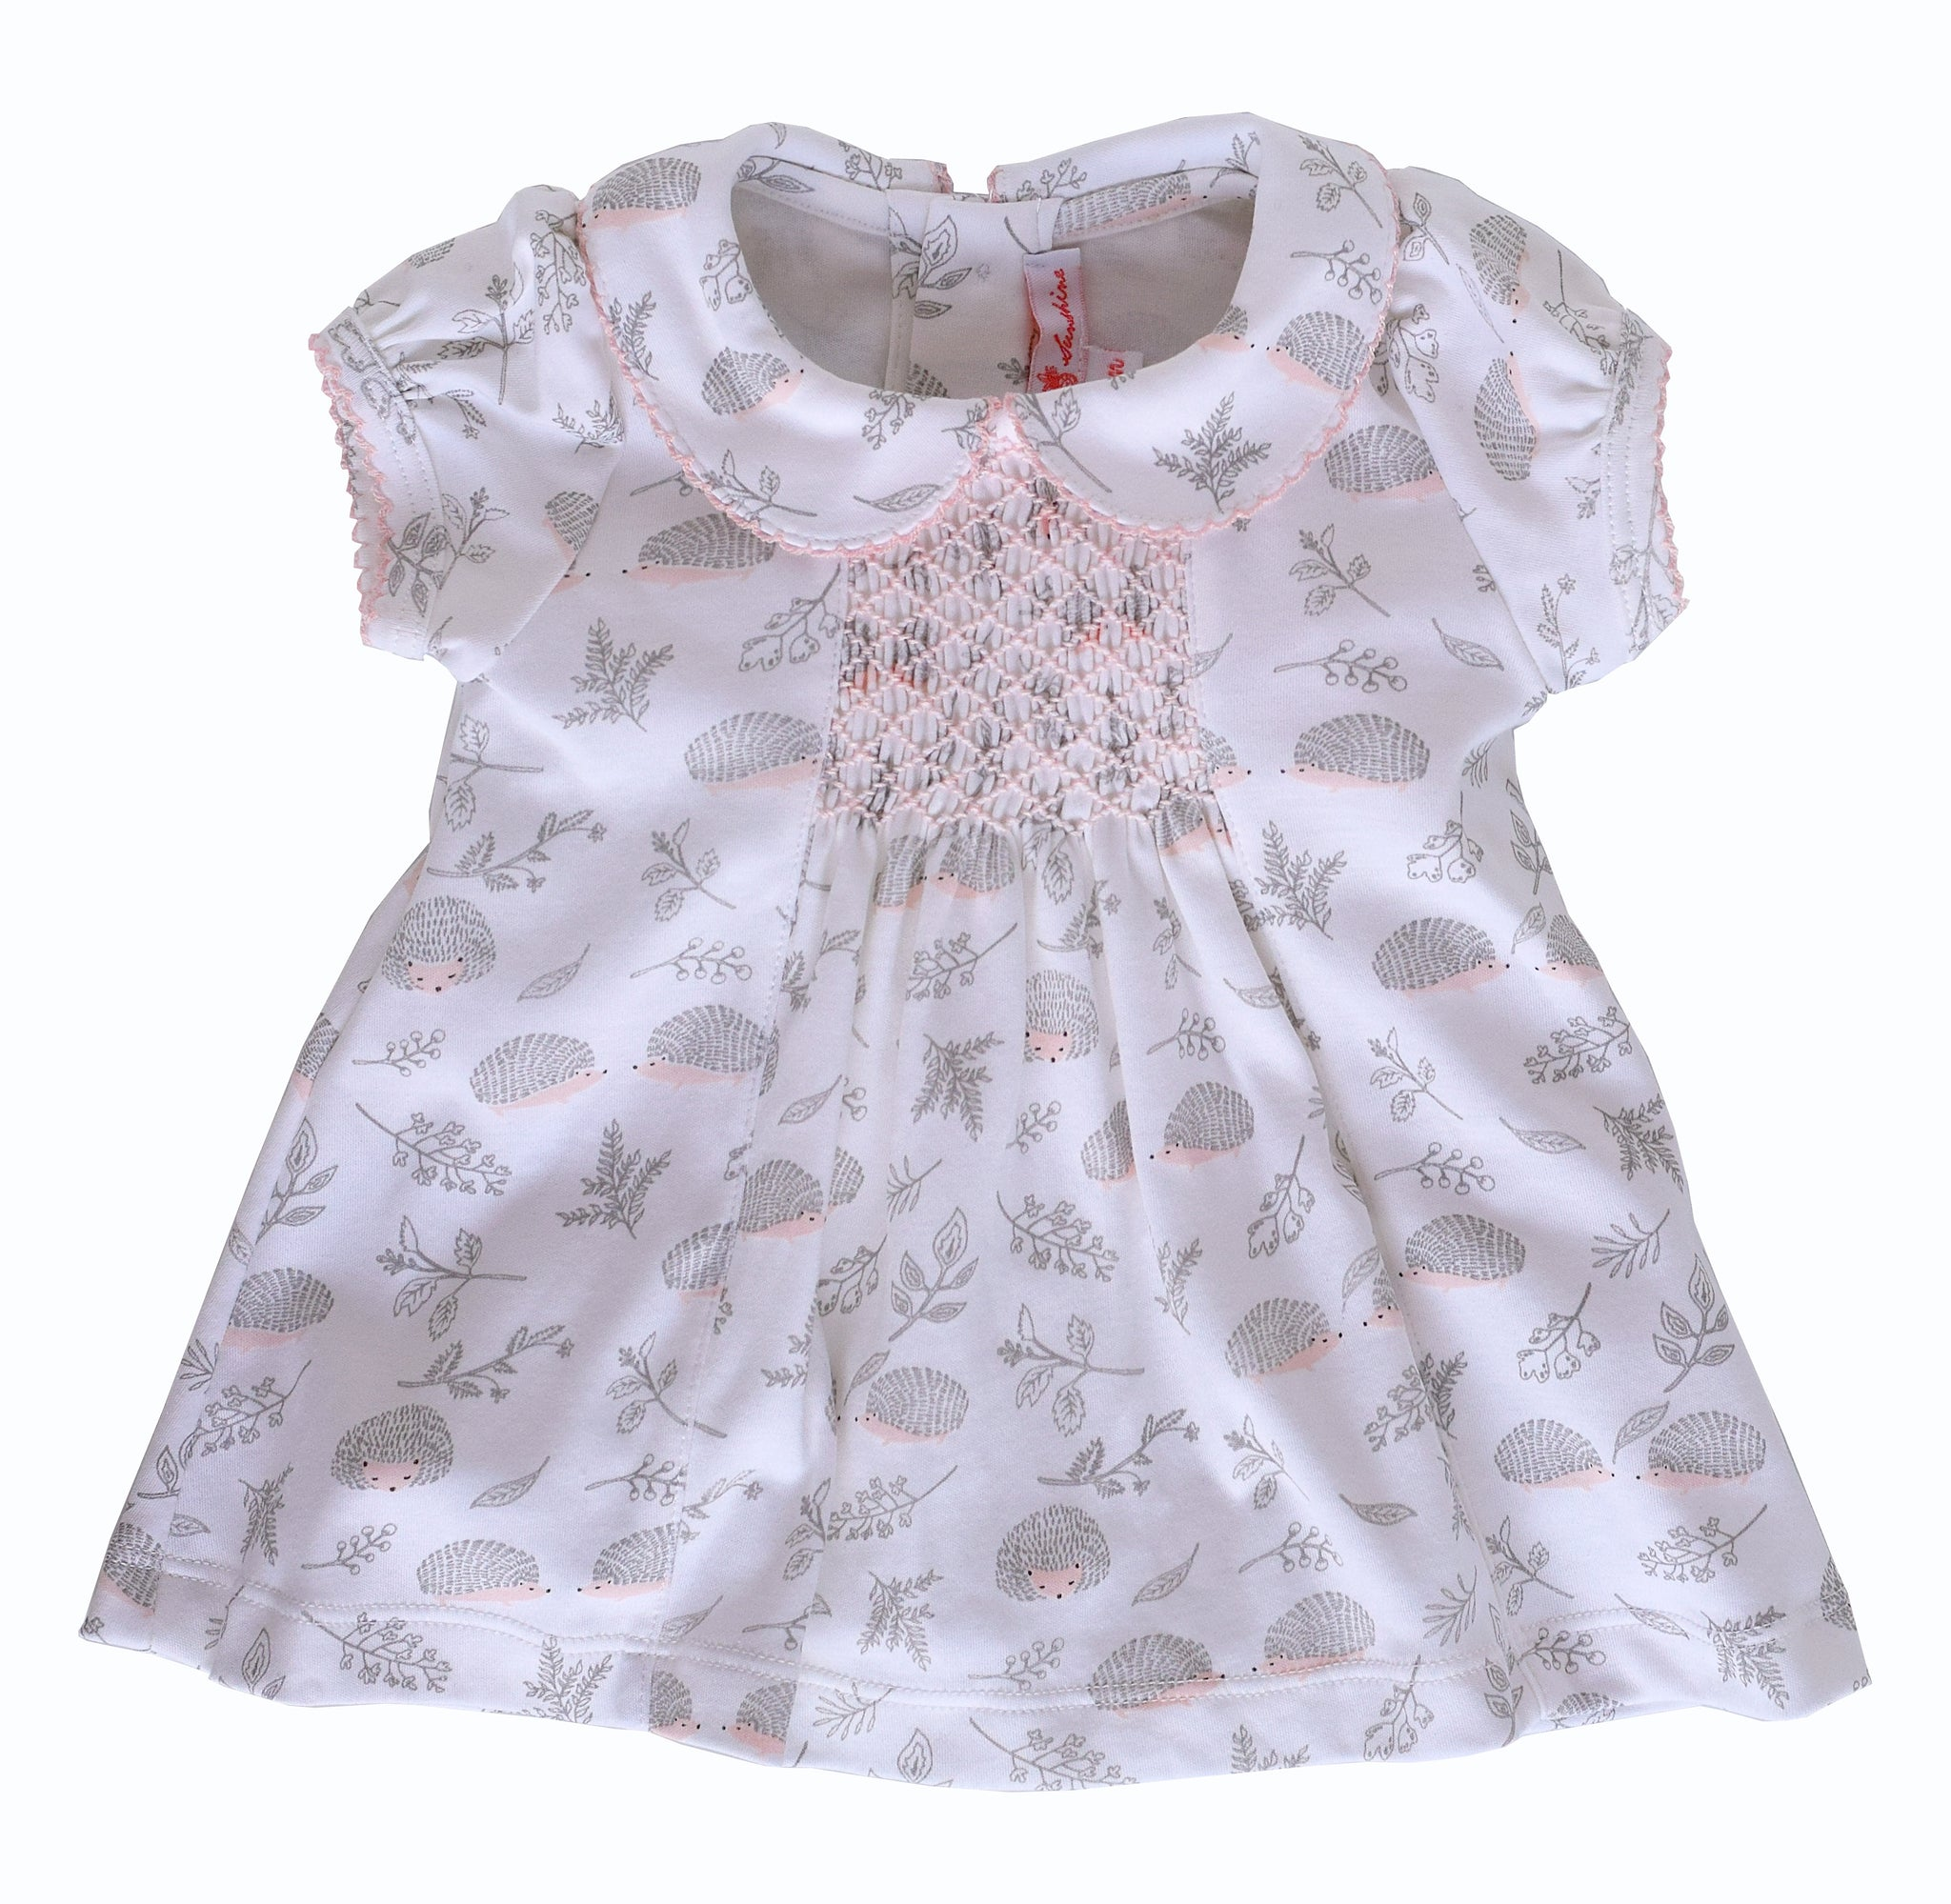 Cameryn Hedgehog Dress with Ruffle Bloomers